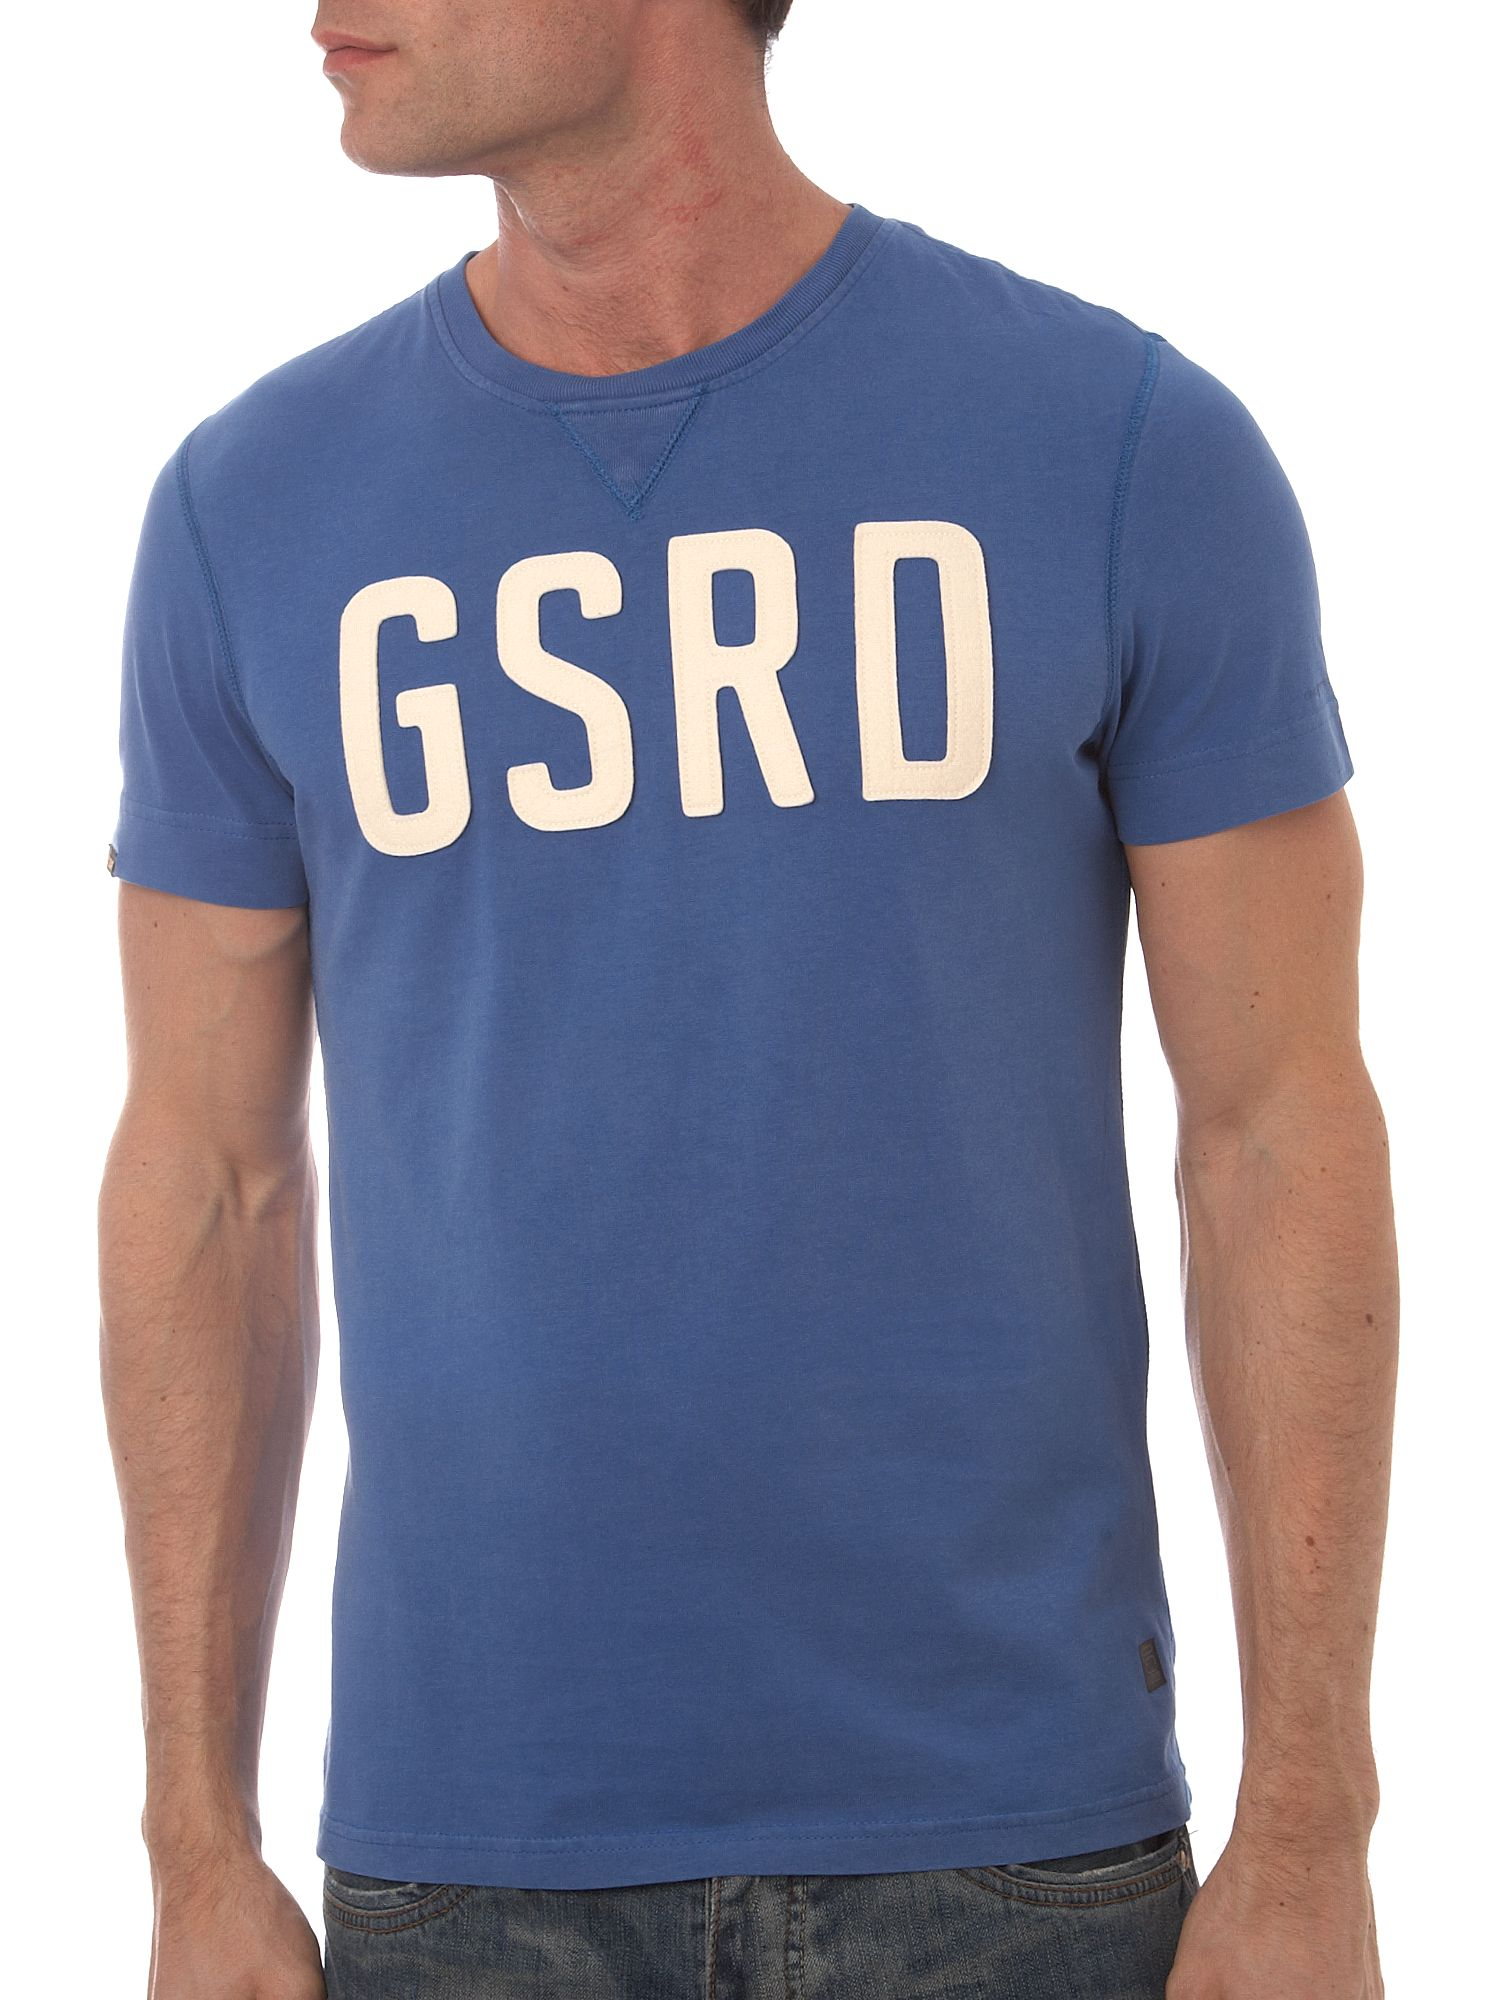 G-Star G.S raw washed t-shirt Blue product image